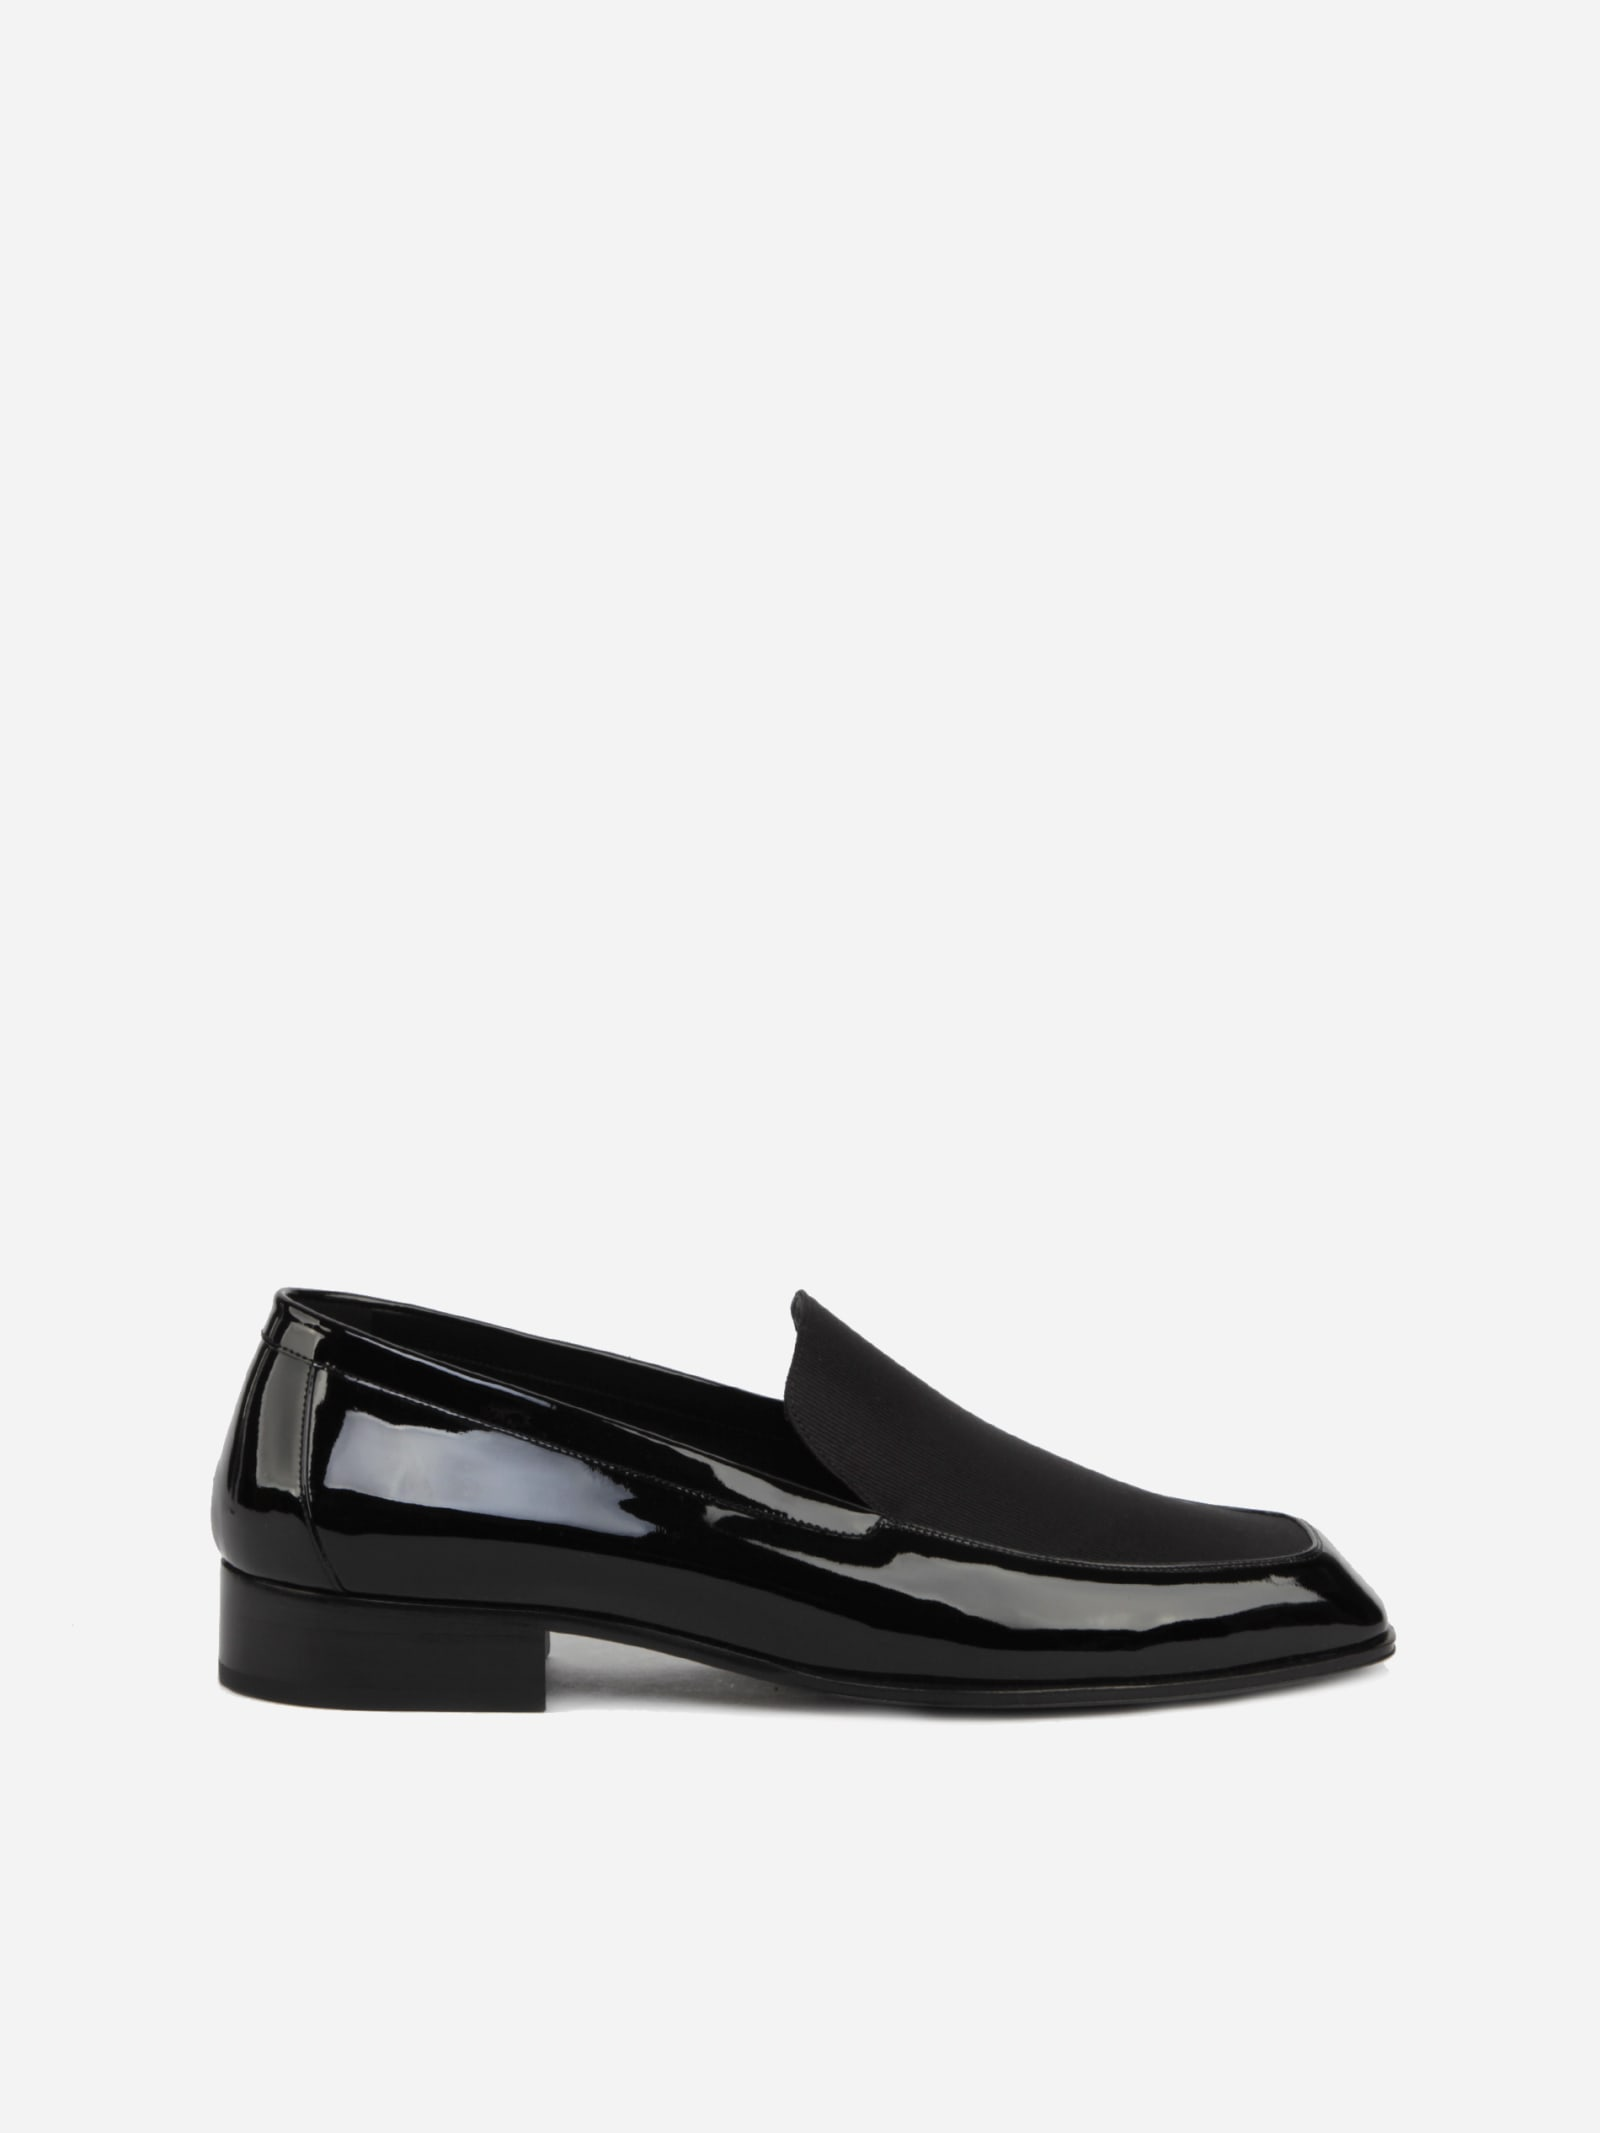 Saint Laurent Leathers HENRY LOAFERS IN LEATHER WITH GROSGRAIN INSERT